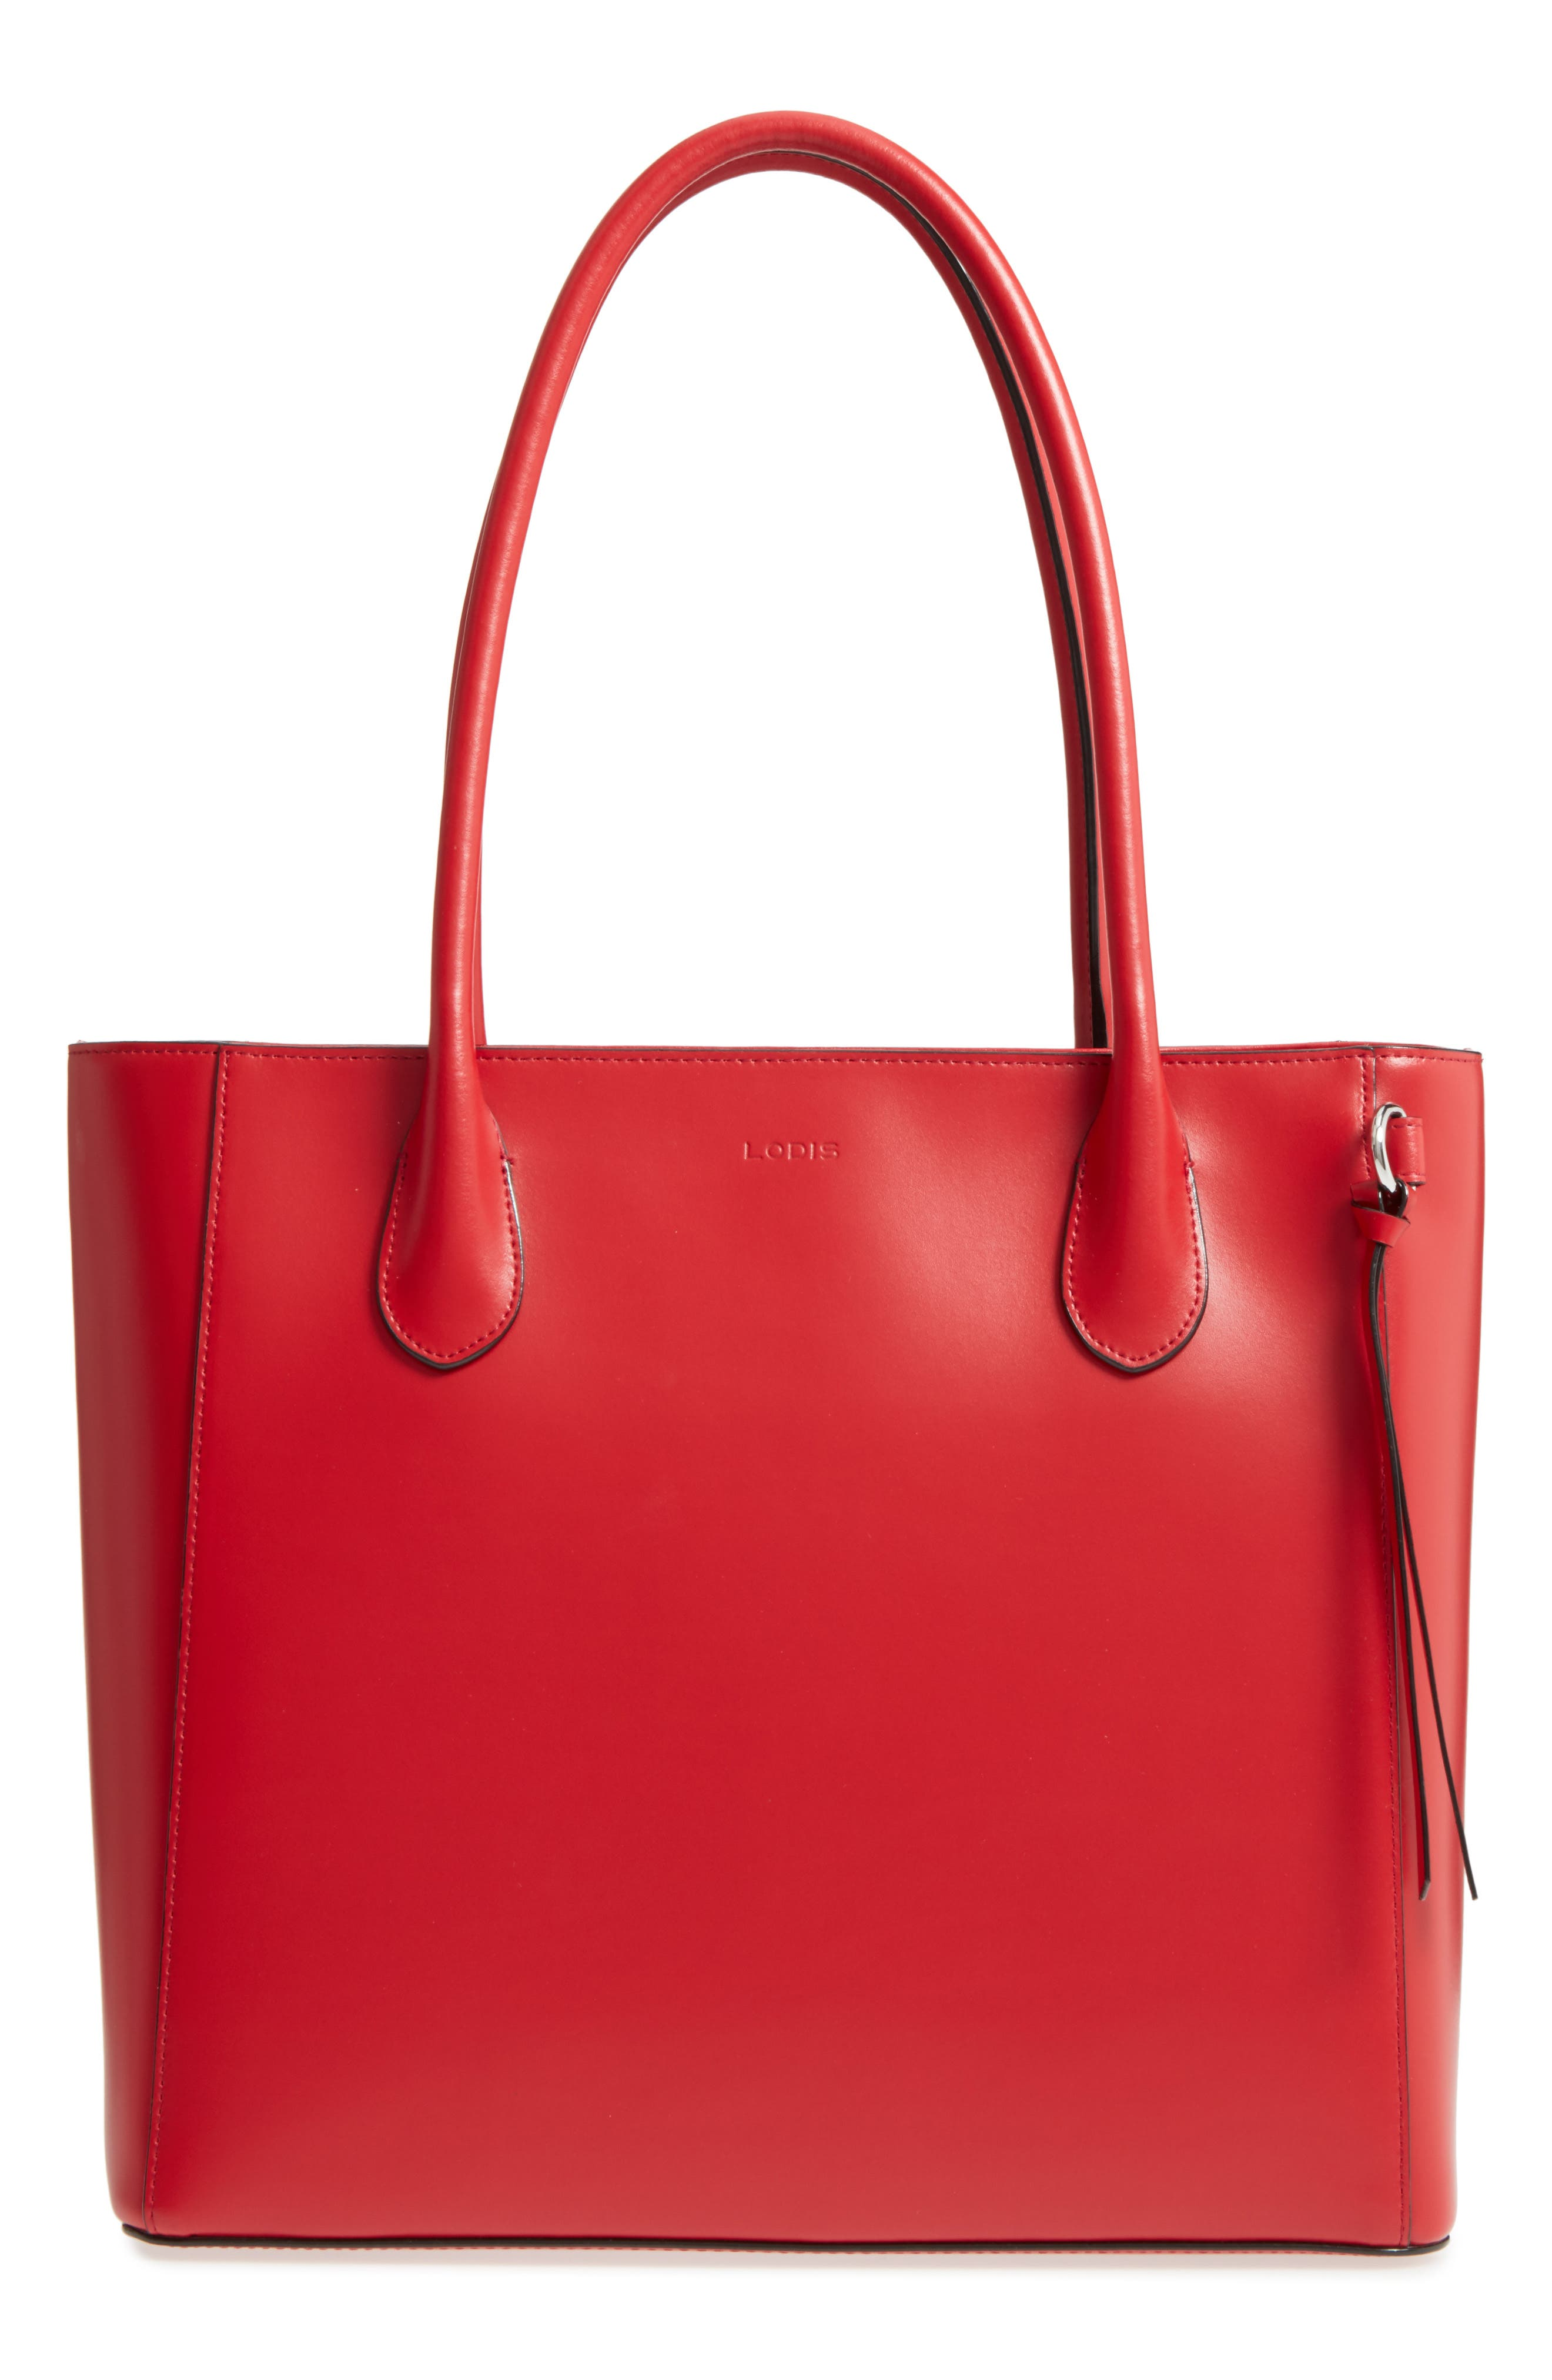 Main Image - LODIS Los Angeles Cecily RFID Leather Tote